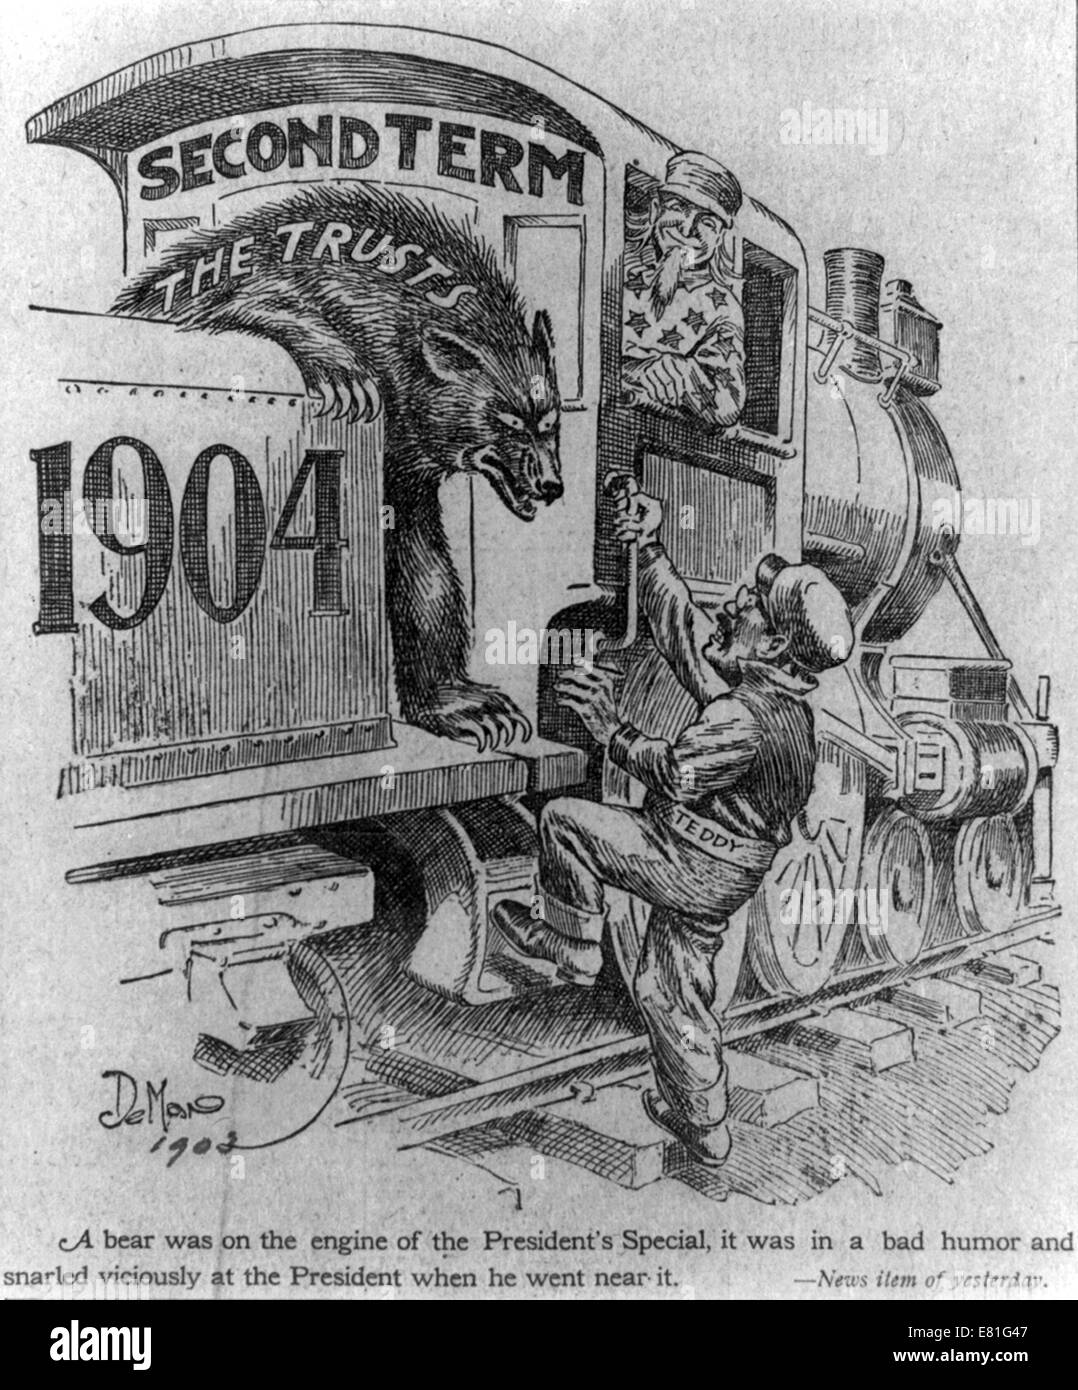 Political cartoon showing Theodore Roosevelt, dressed as a train's fireman, boarding a locomotive label 'second - Stock Image